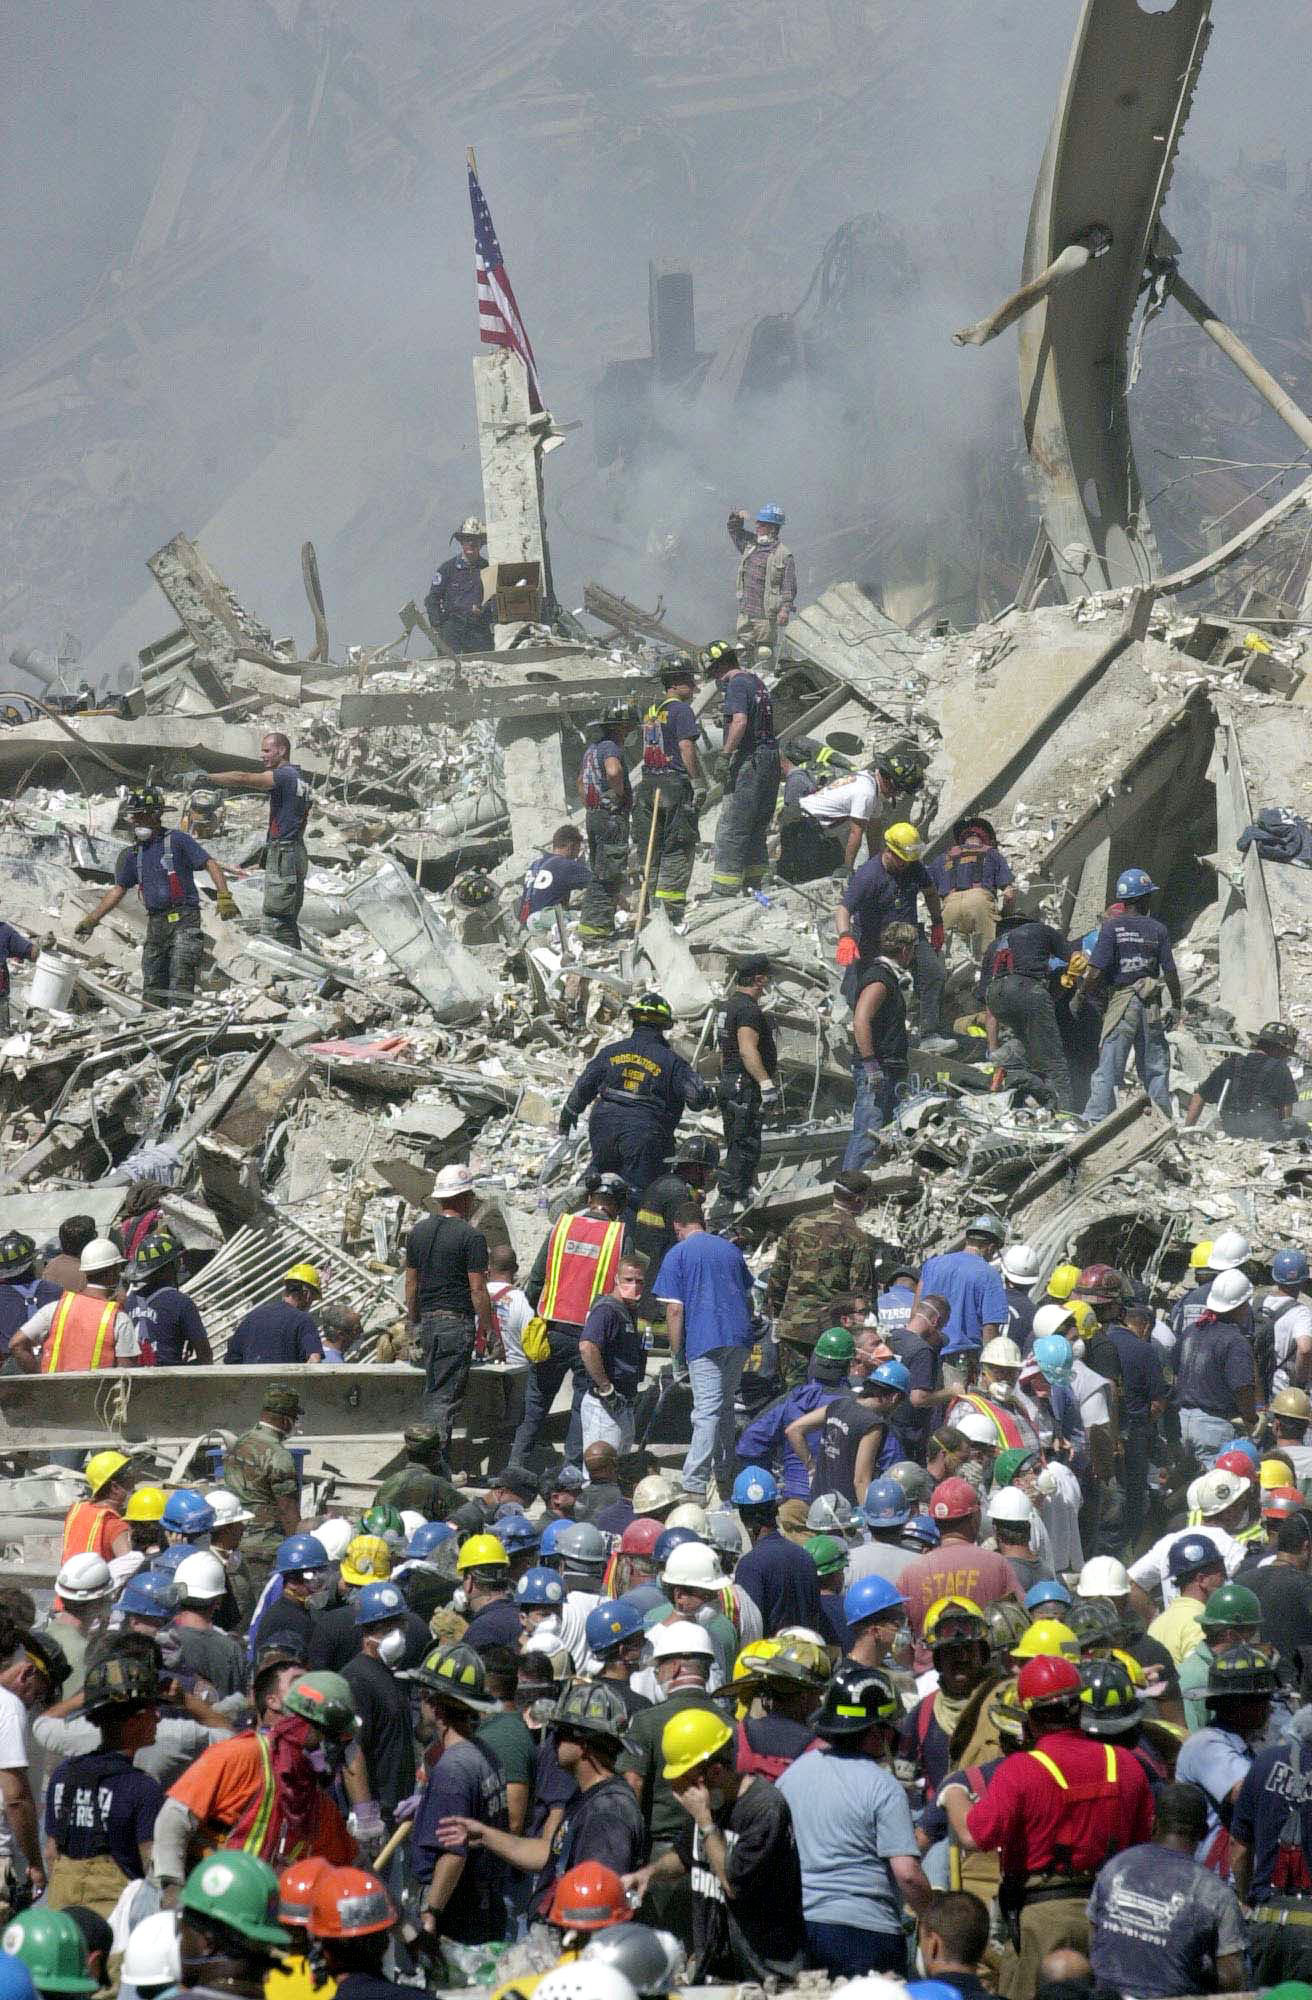 9/11 rescue workers